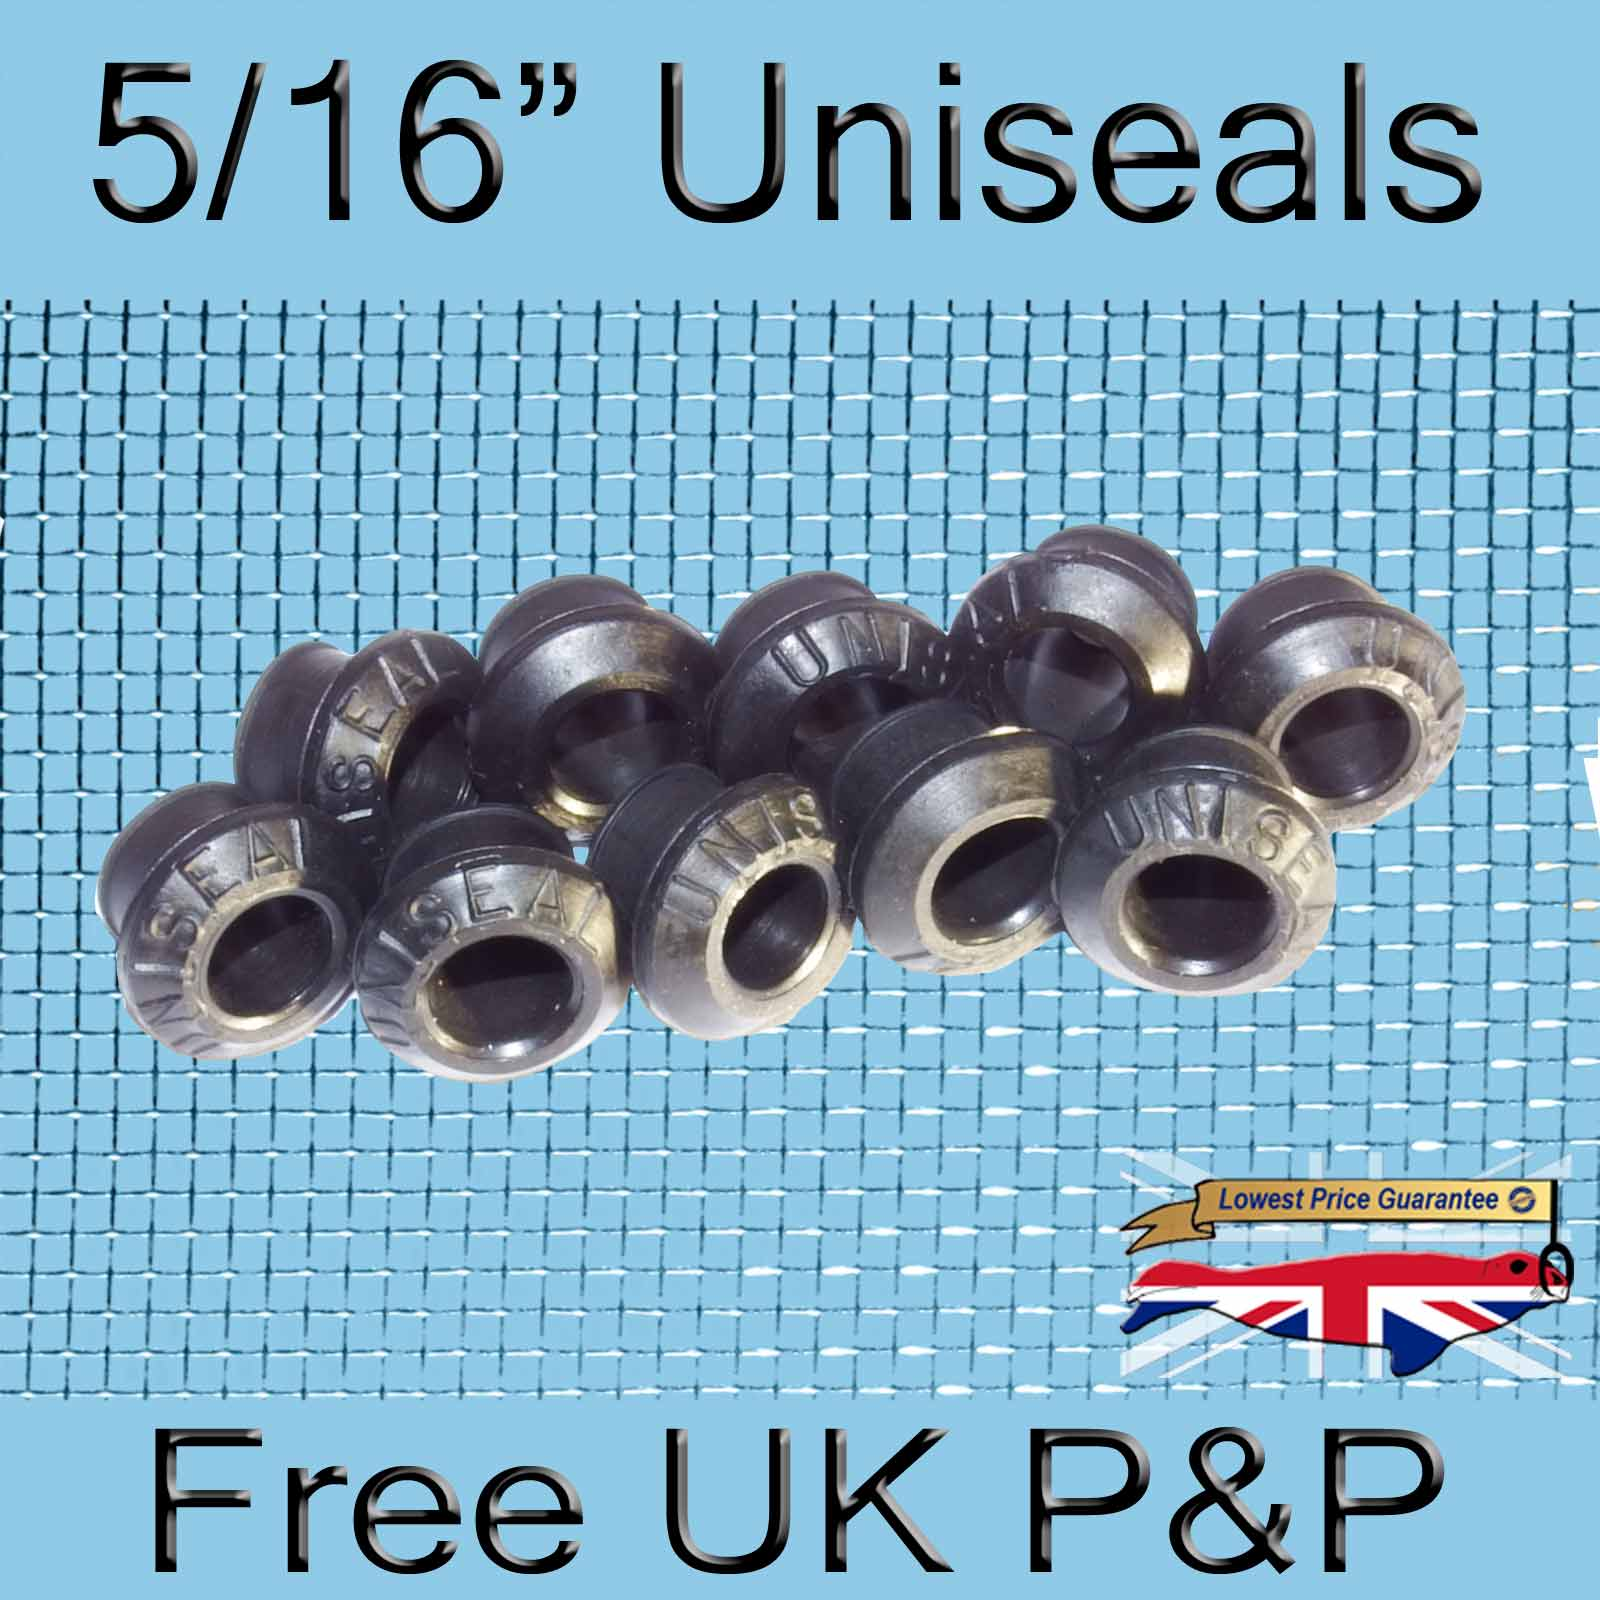 Magnify 5/16 inch Uniseal photo 10xfive-sixteenths-Uniseal-Tank-Connector.jpg